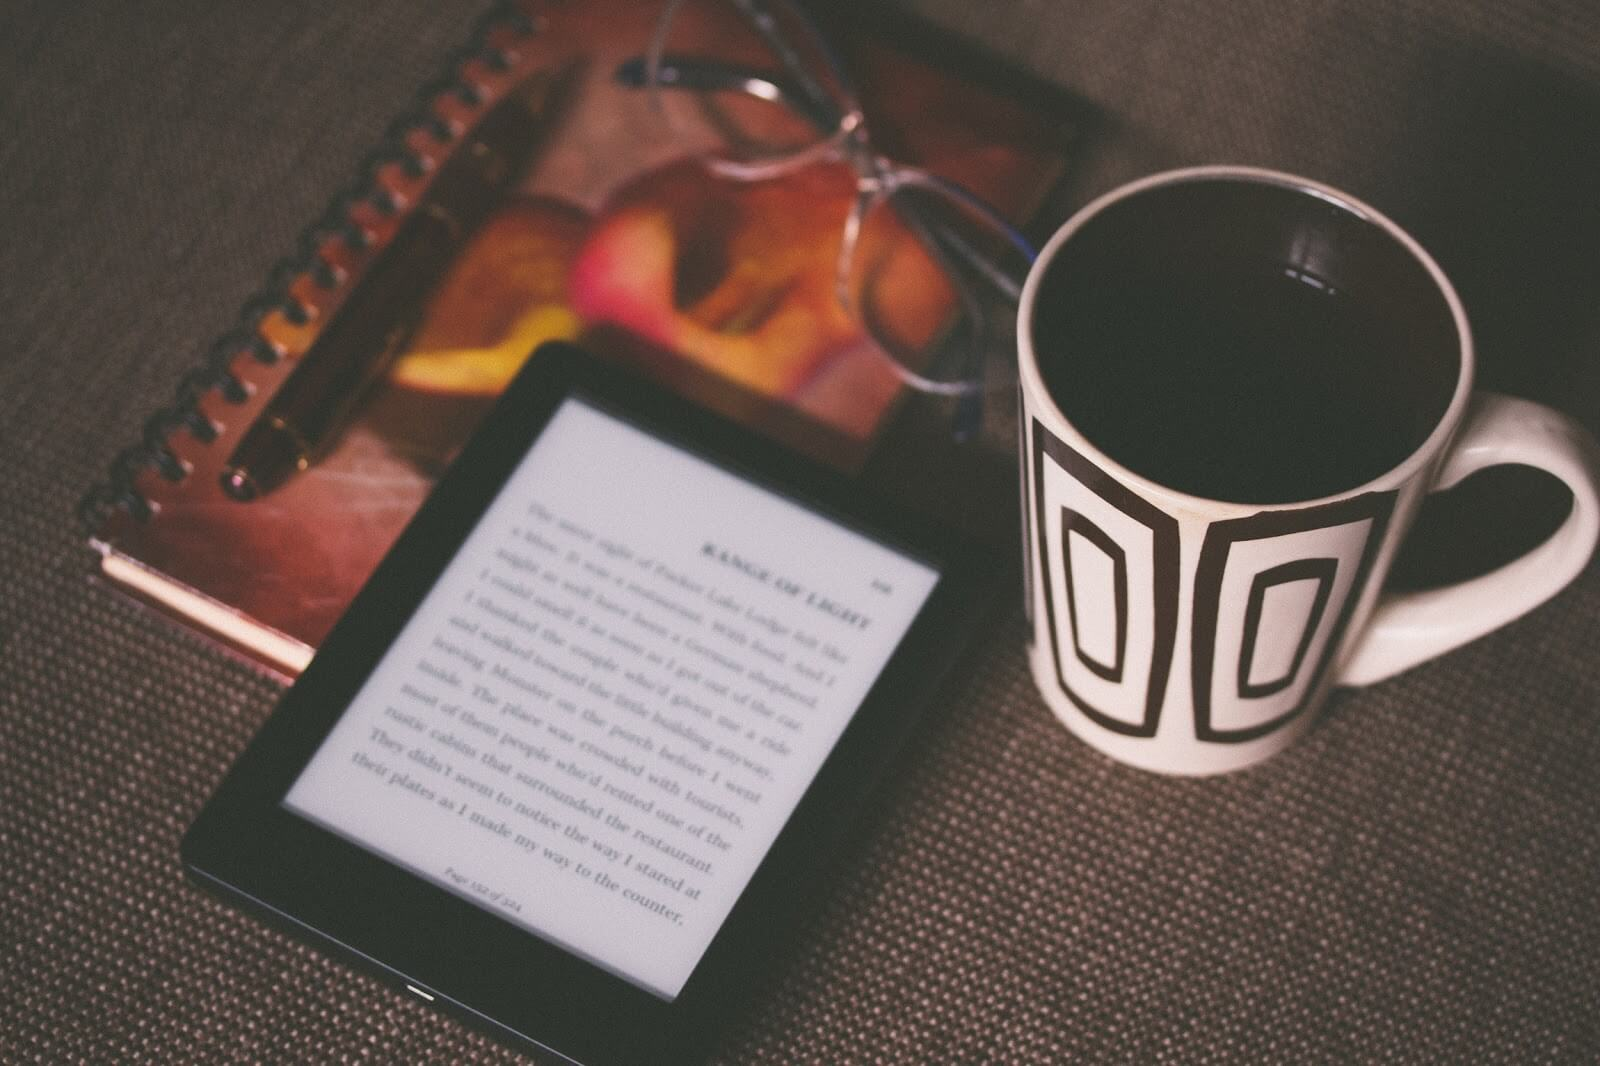 ebook reading with coffee